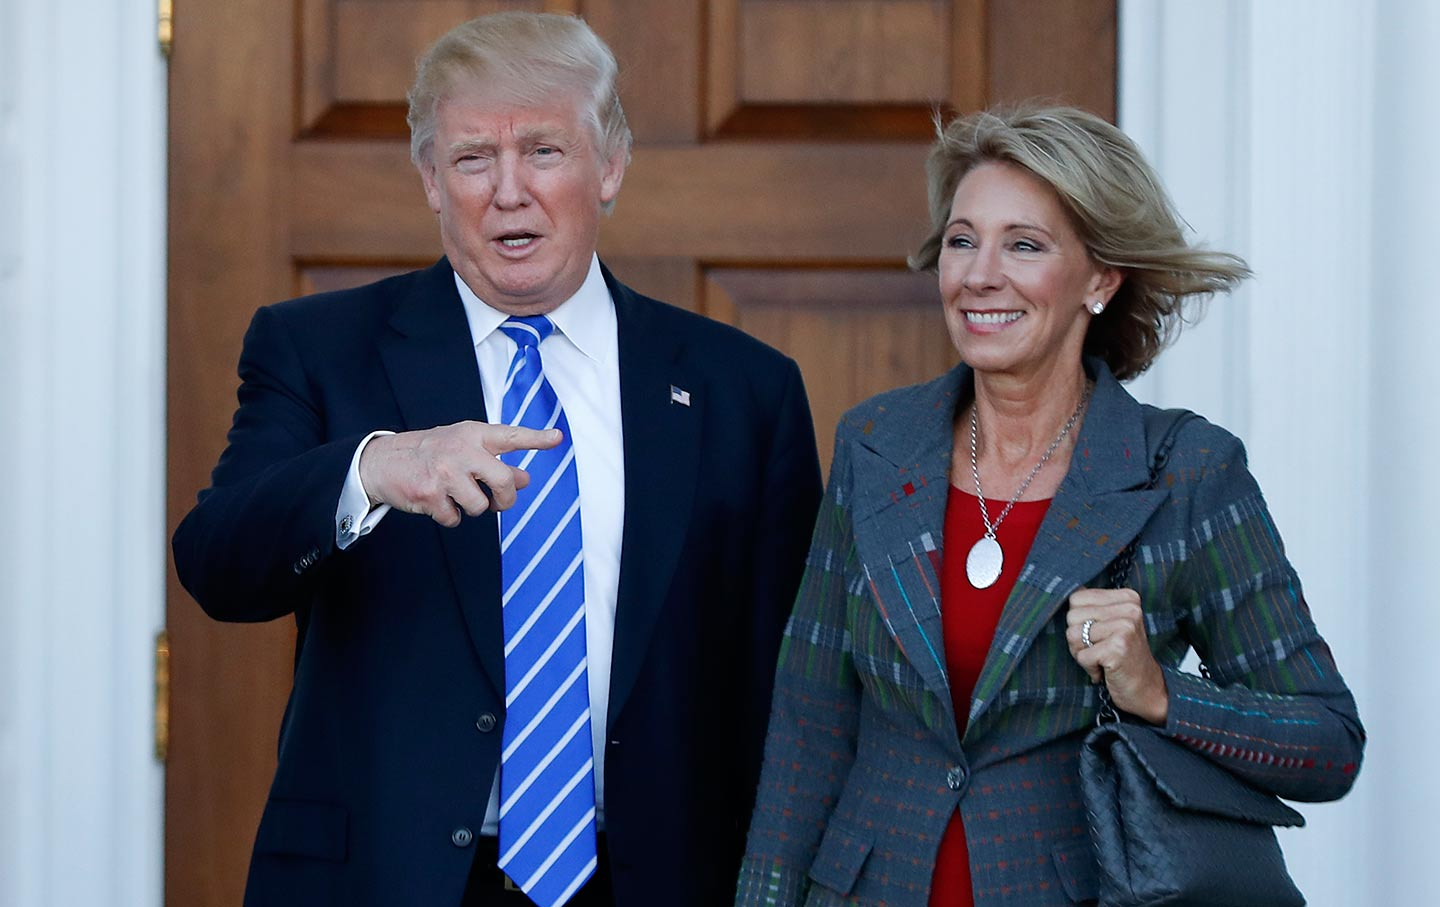 b34a83752c7ff President Donald Trump and Betsy DeVos pose for photographs at Trump  National Golf Club Bedminster clubhouse in New Jersey. (AP   Carolyn Kaster)